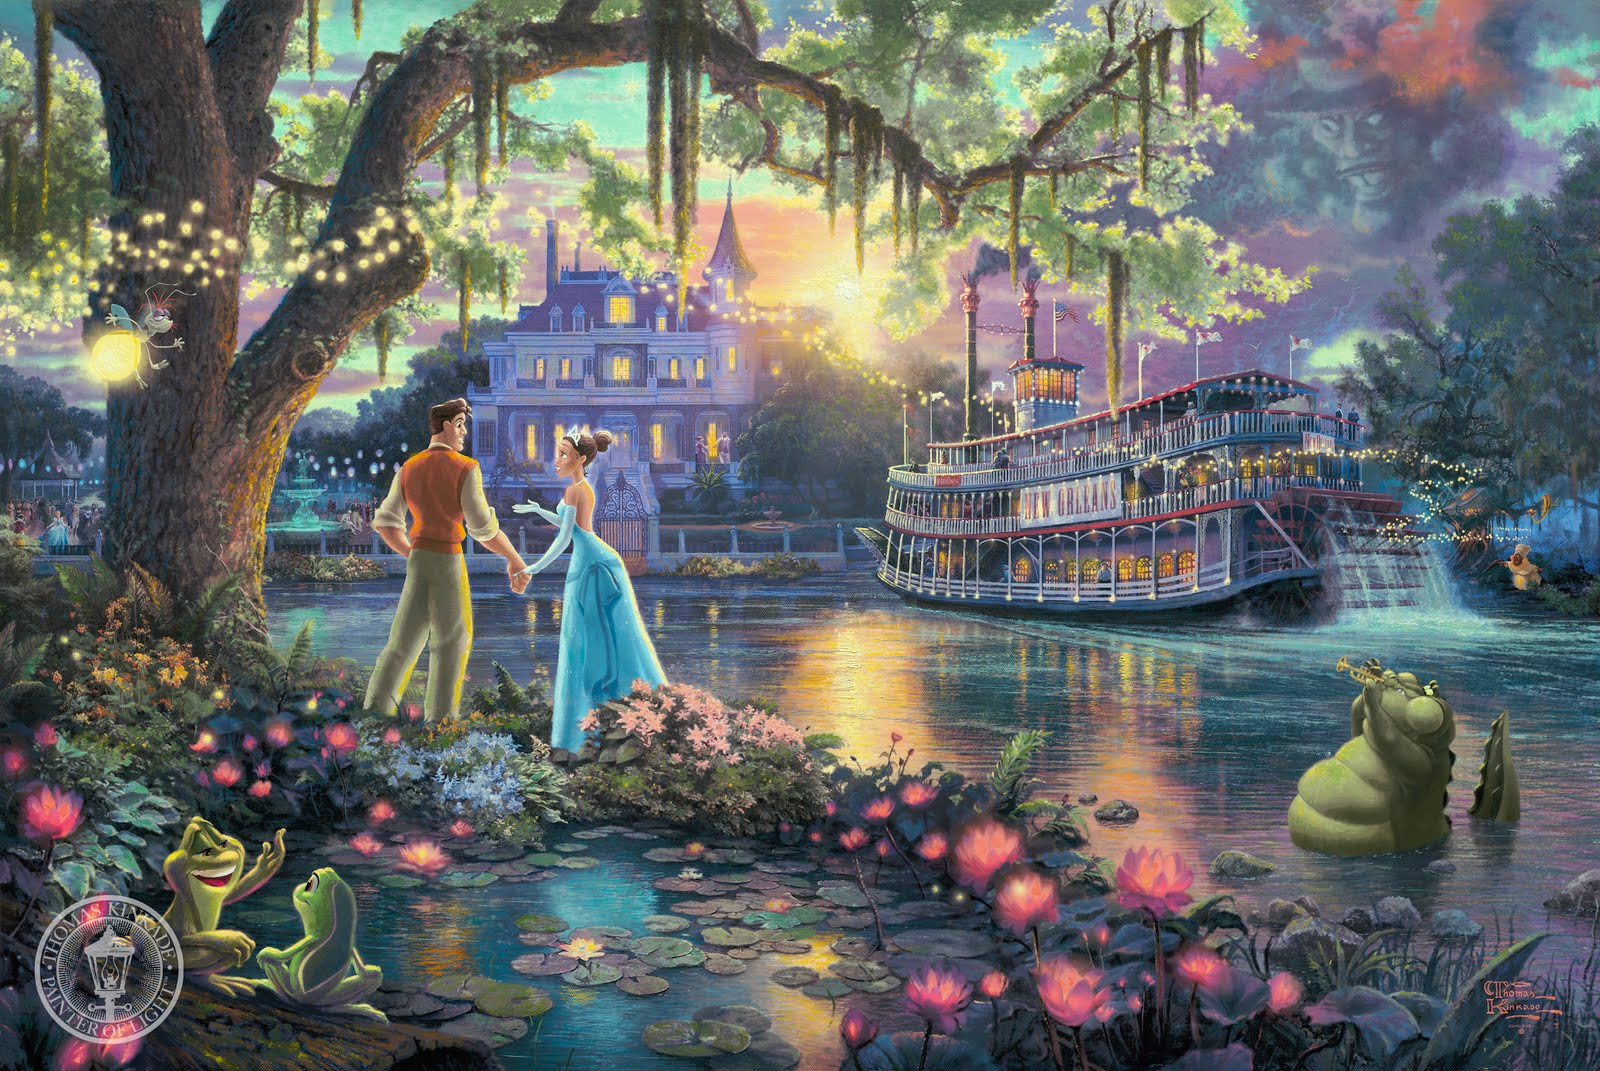 https://i1.wp.com/thedisneyblog.com/wp-content/uploads/2012/04/princess-frog-kinkade.jpg